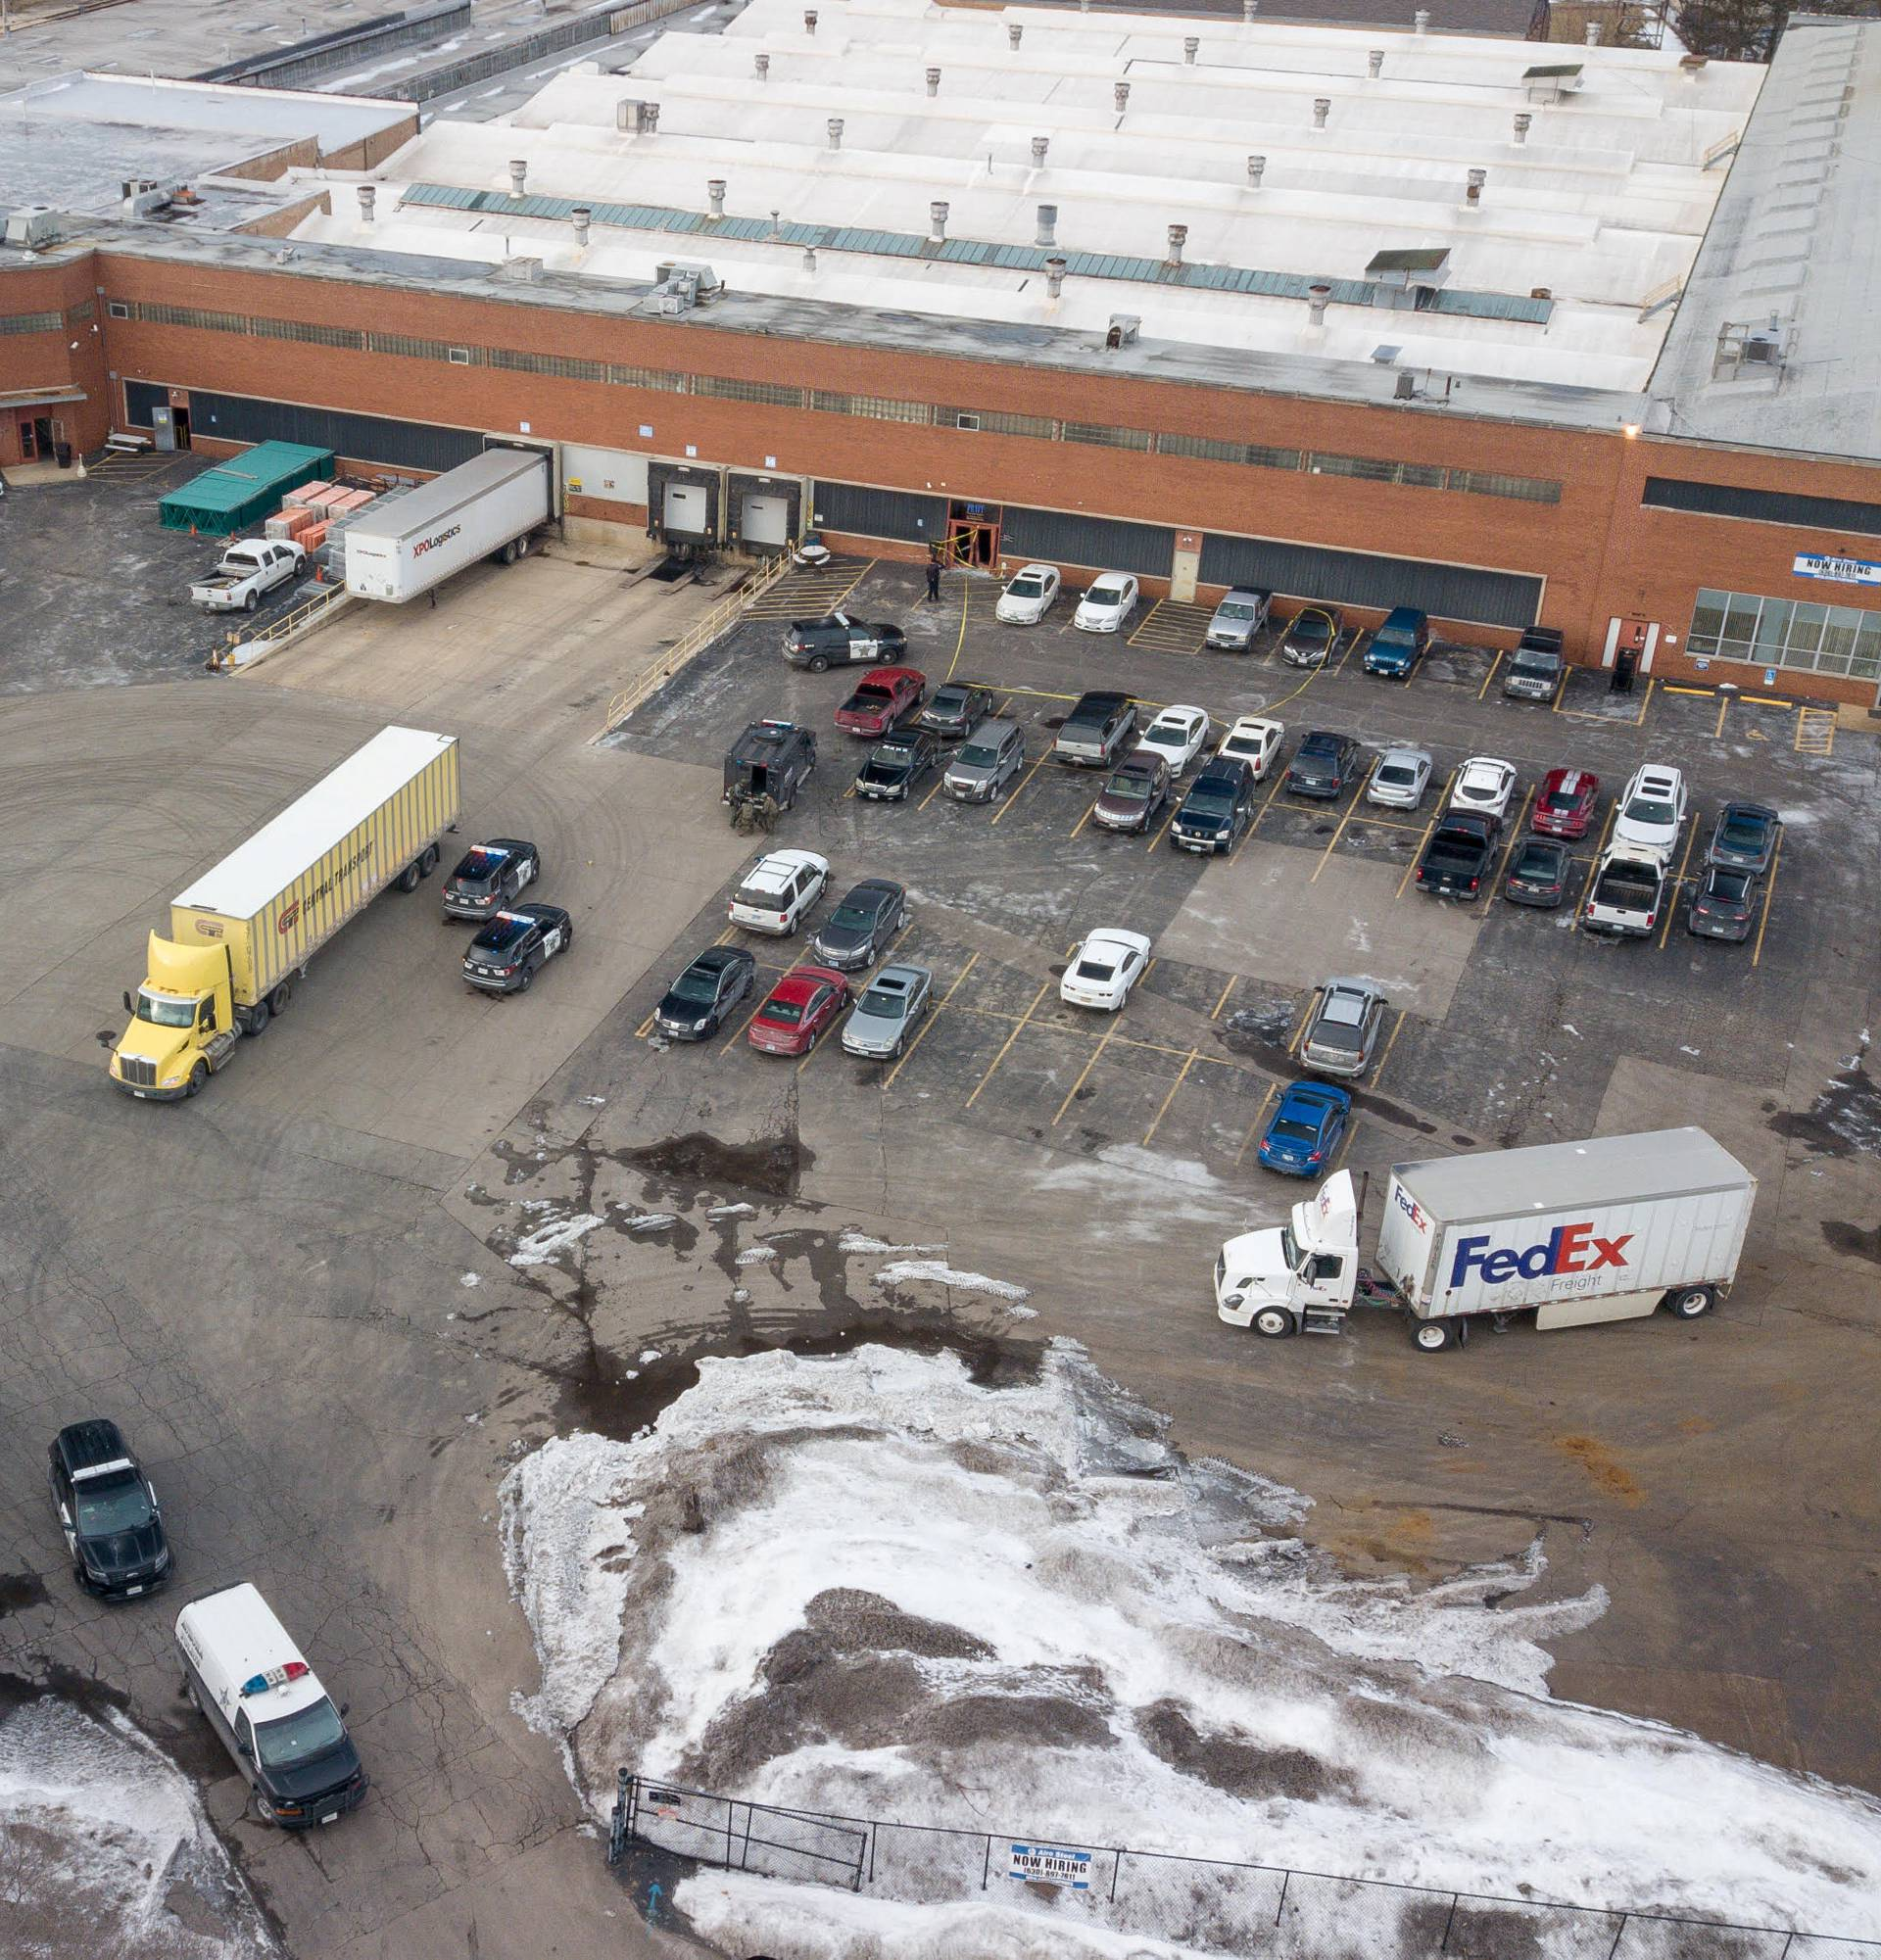 An aerial photo of police and emergency vehicles parked in a lot adjacent to a warehouse at the scene of a mass shooting involving multiply casualties in Aurora, Illinois